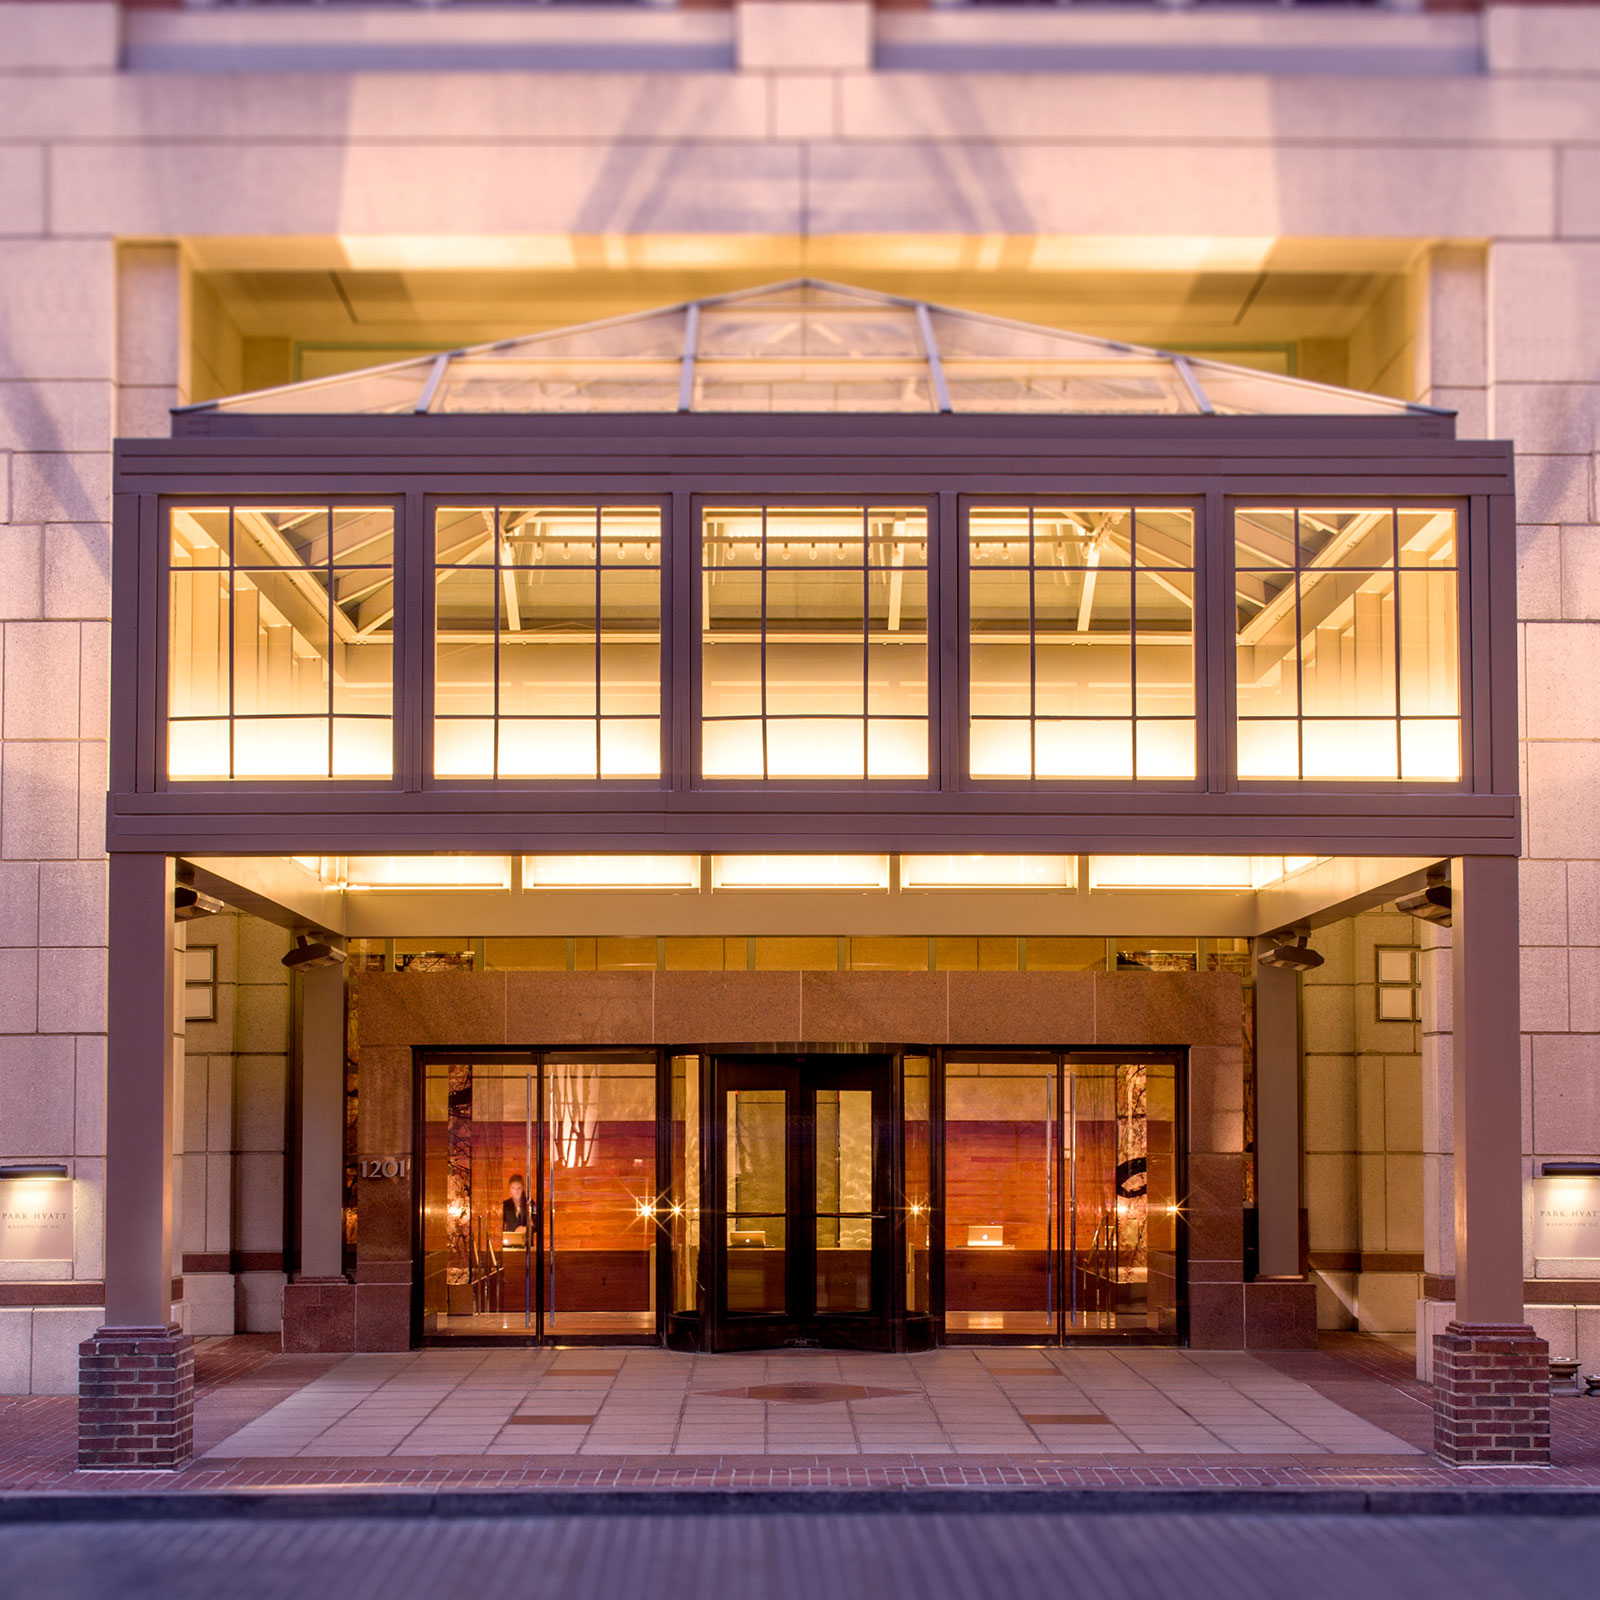 Park Hyatt, Washington, DC